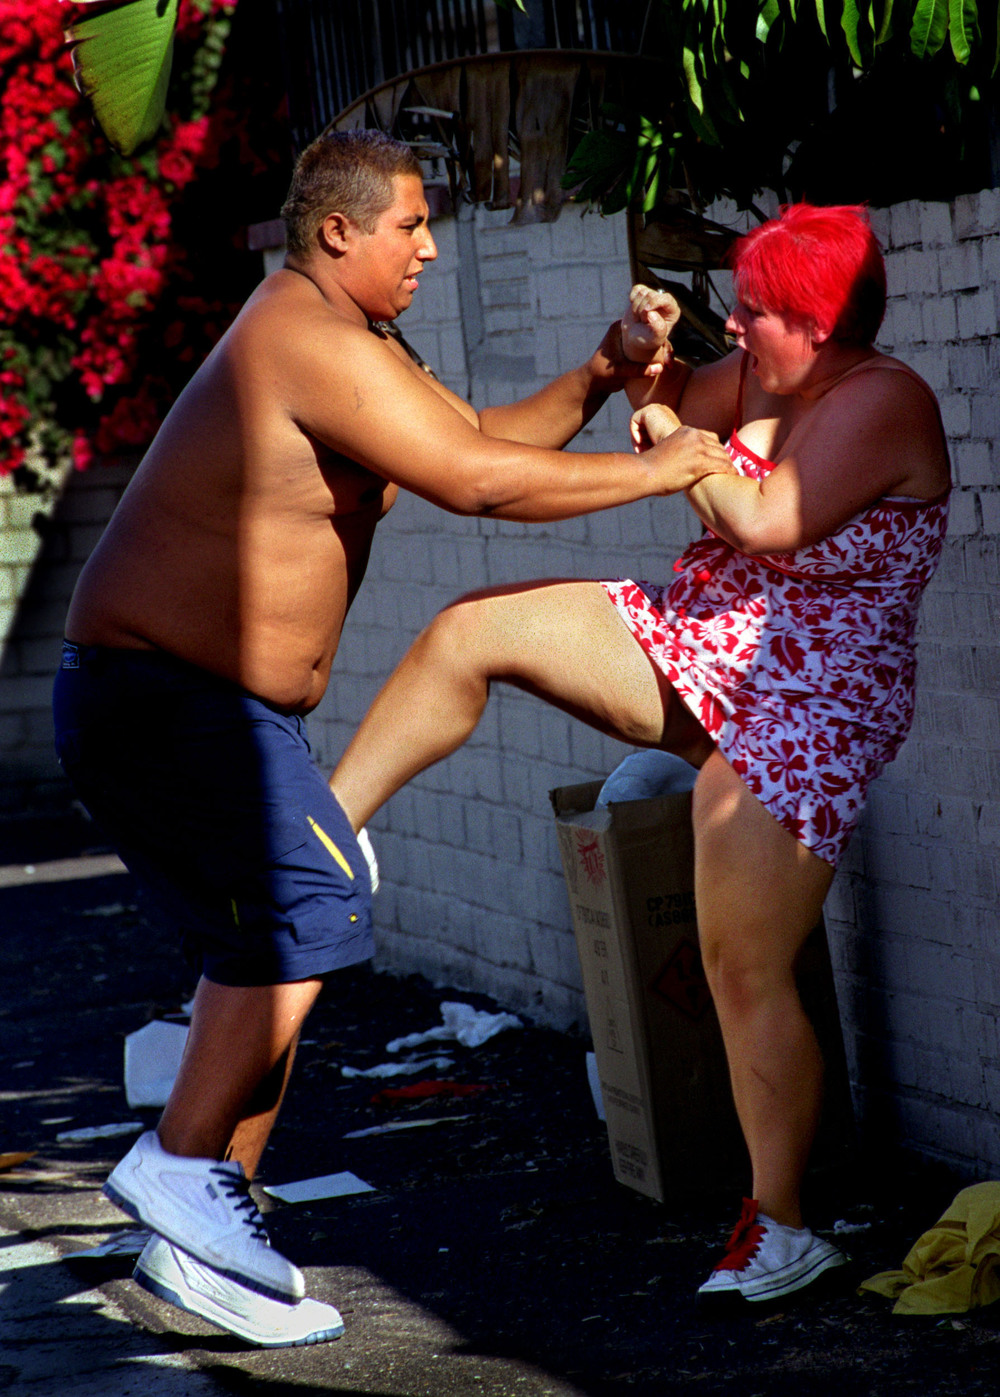 On a hot summer day, homeless and hanging out in the streets, newlyweds Sam and Janea get into a heated argument which quickly turns physical. He runs up to her in the alley, grabs her wrists, and the struggle begins. After he backhands her in the face, she kicks him in the groin. ©Gail Fisher Los Angeles Times